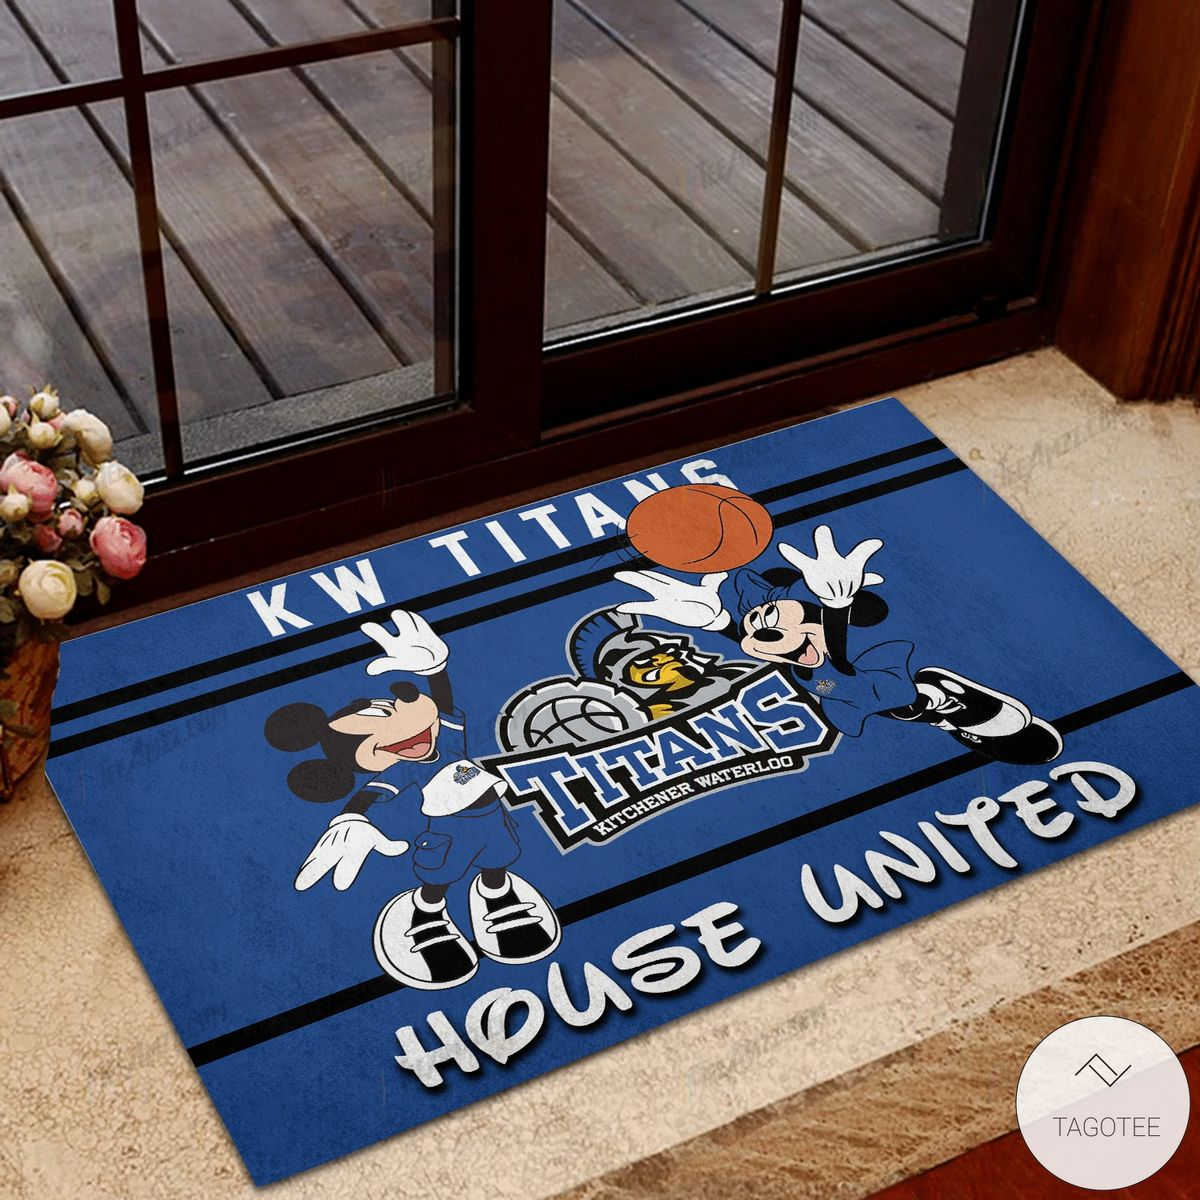 KW Titans Kitchener Waterloo House United Mickey Mouse And Minnie Mouse Doormat